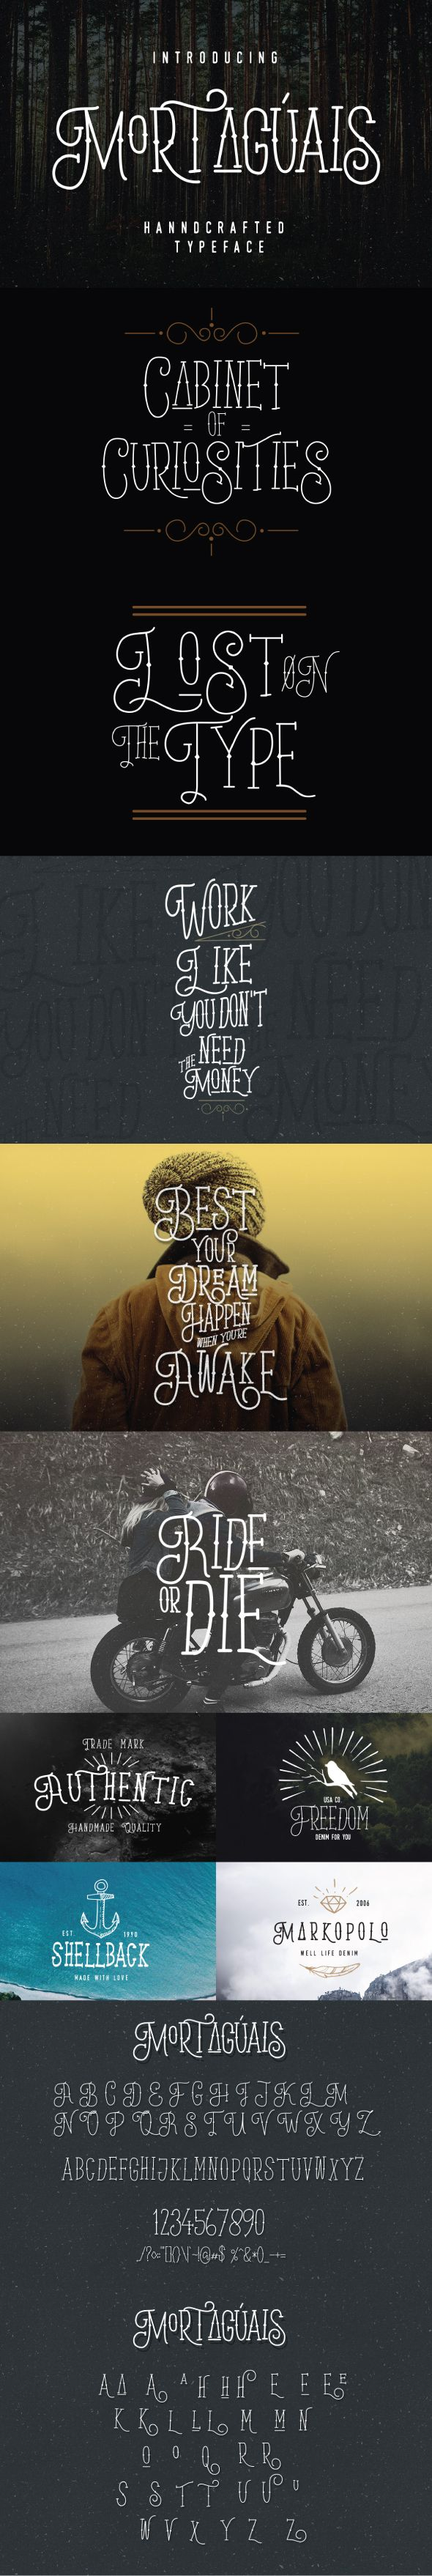 1151 best work fonts designs and ideas images on pinterest